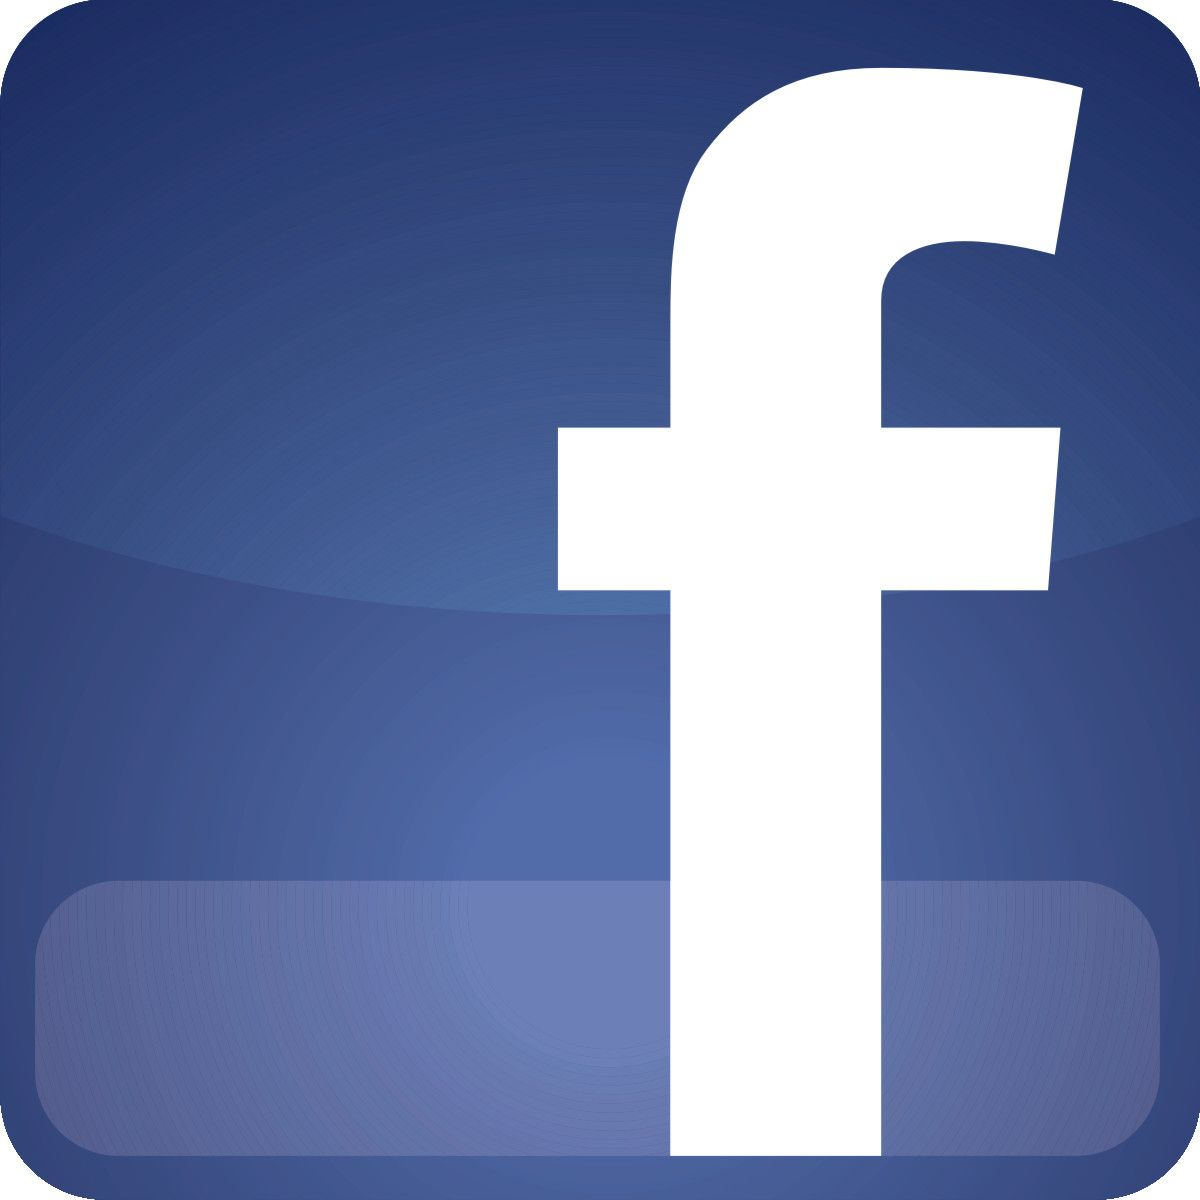 Very Small Facebook Logo - For Facebook (And Others), Small Businesses Aren't the Focus ...